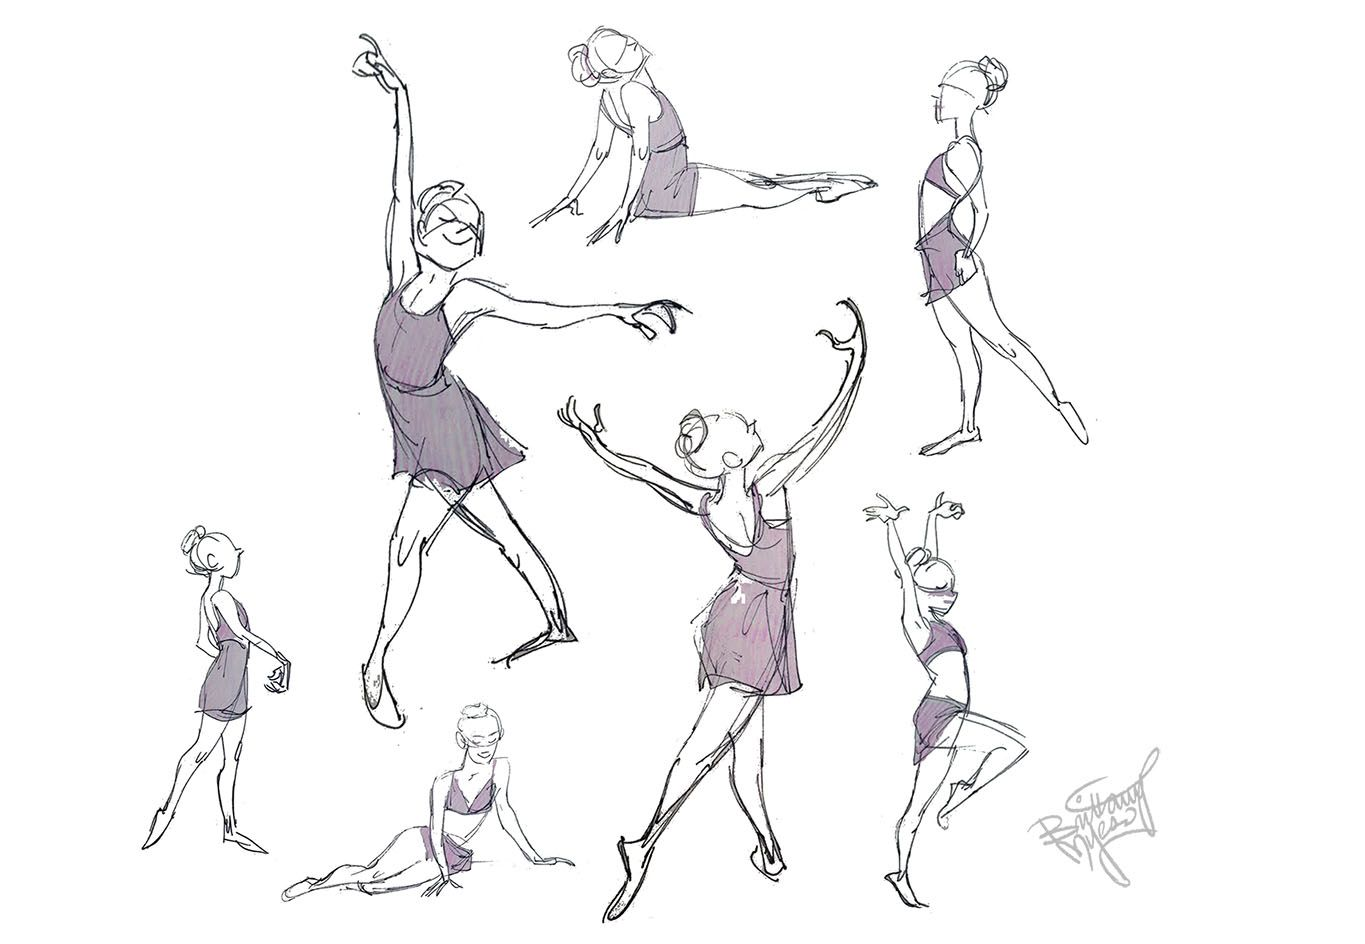 Brittany myers art udance momsu drawings gestures pinterest